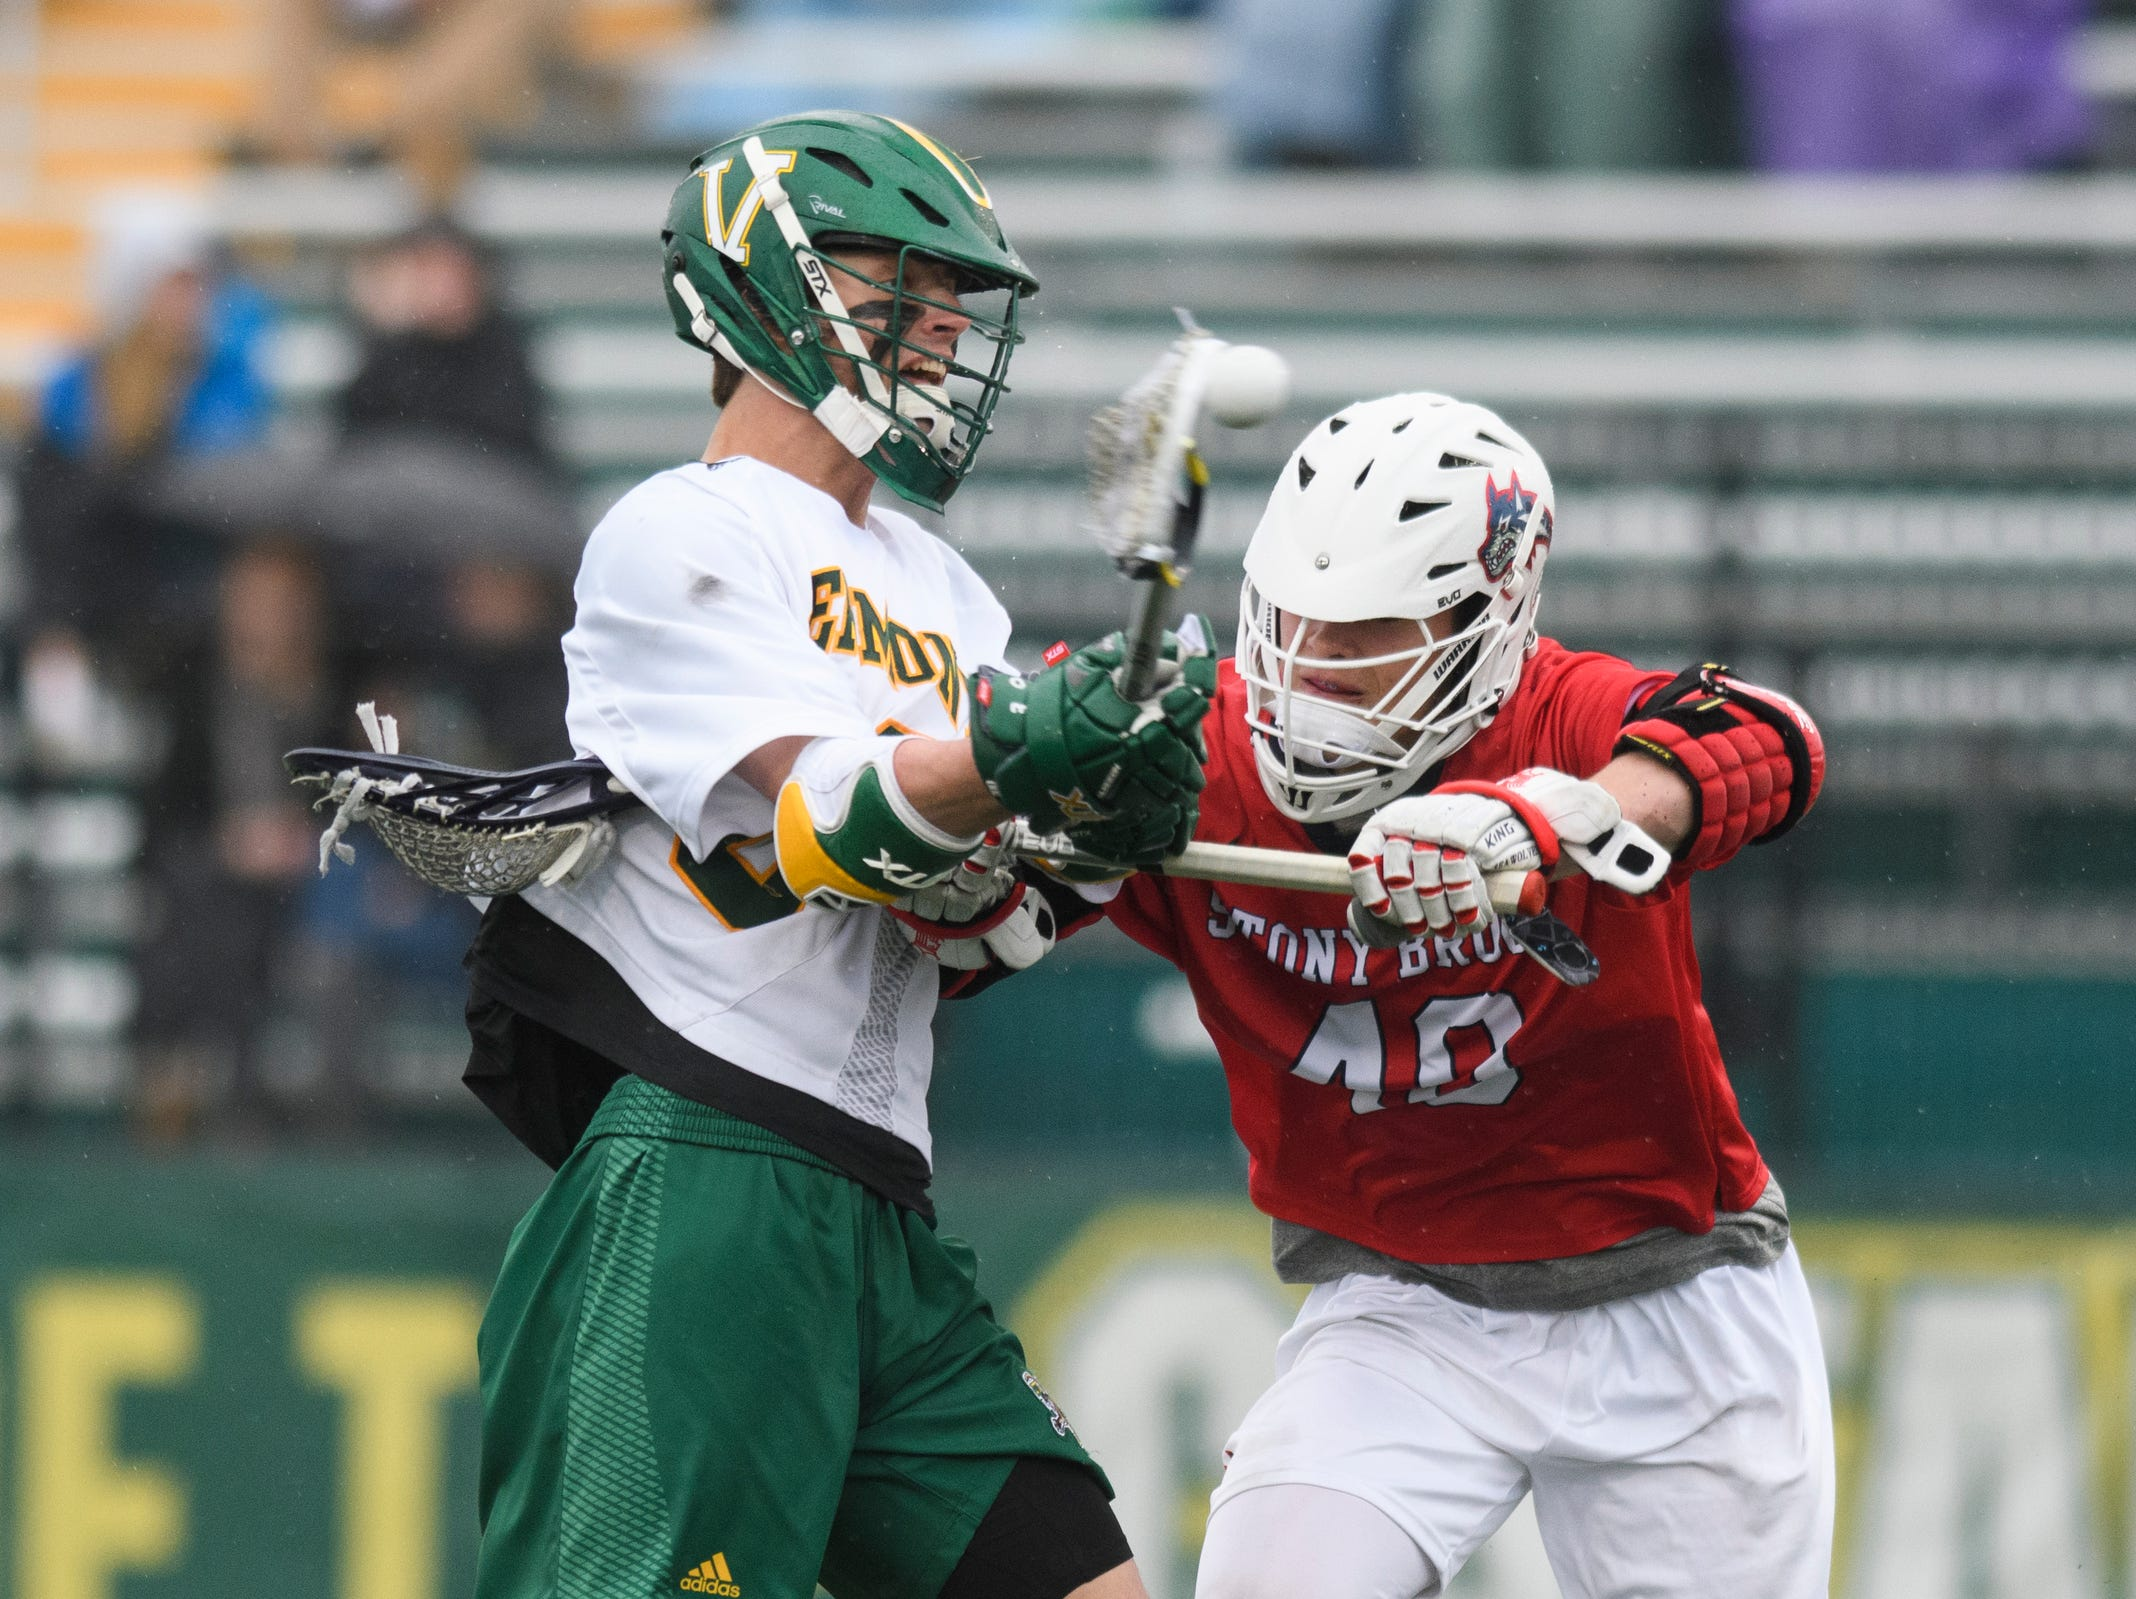 Vermont's Sal Iaria (30) shoots the ball during the men's lacrosse game between the Stony Brook Sea Wolves and the Vermont Catamounts at Virtue Field on Saturday afternoon April 20, 2019 in Burlington, Vermont.